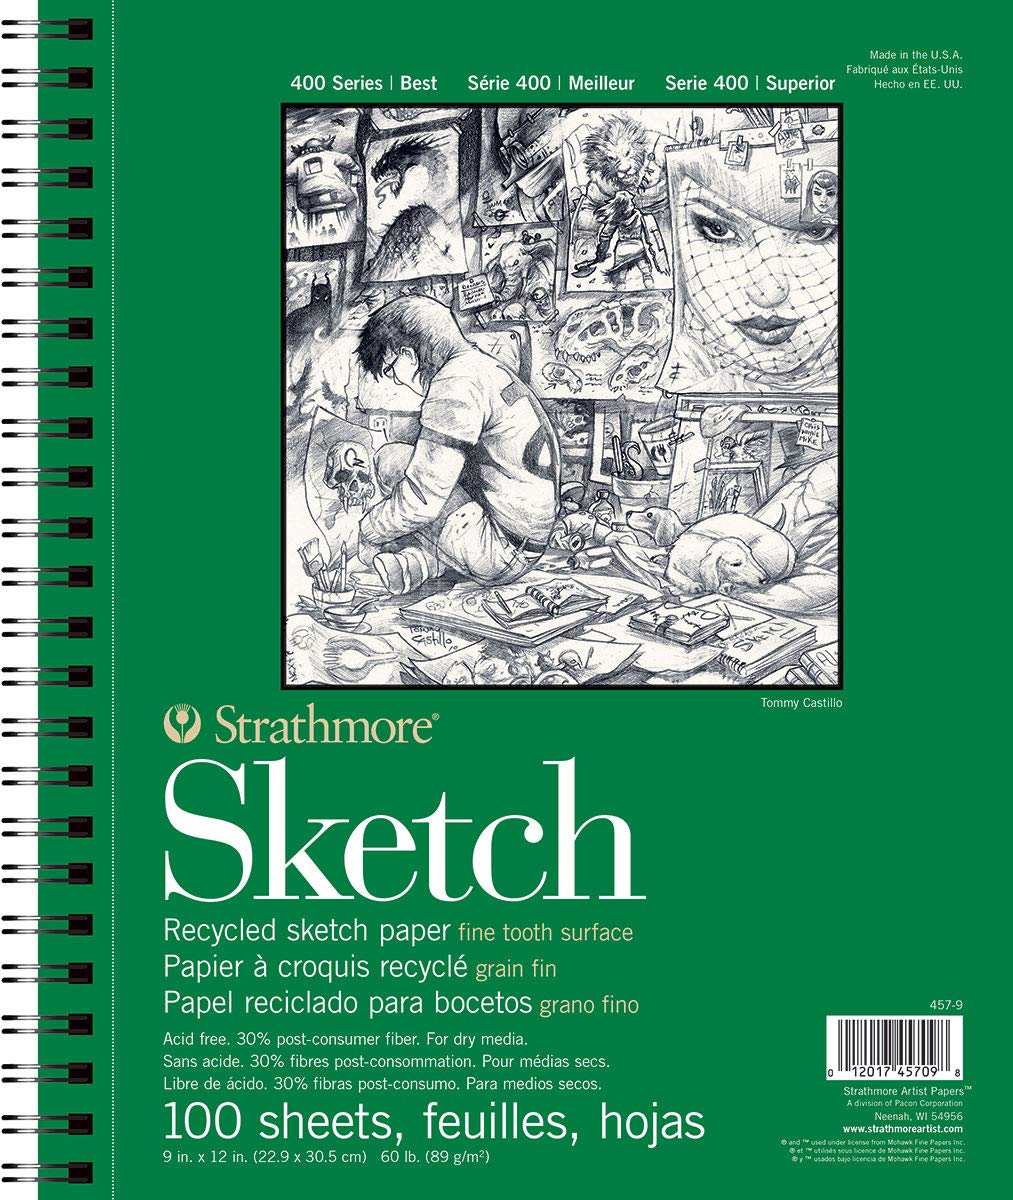 Strathmore Recycled 9' x 12' Sketch Pad, Paper Multicolor, 9 by 12' 9 by 12 457-9